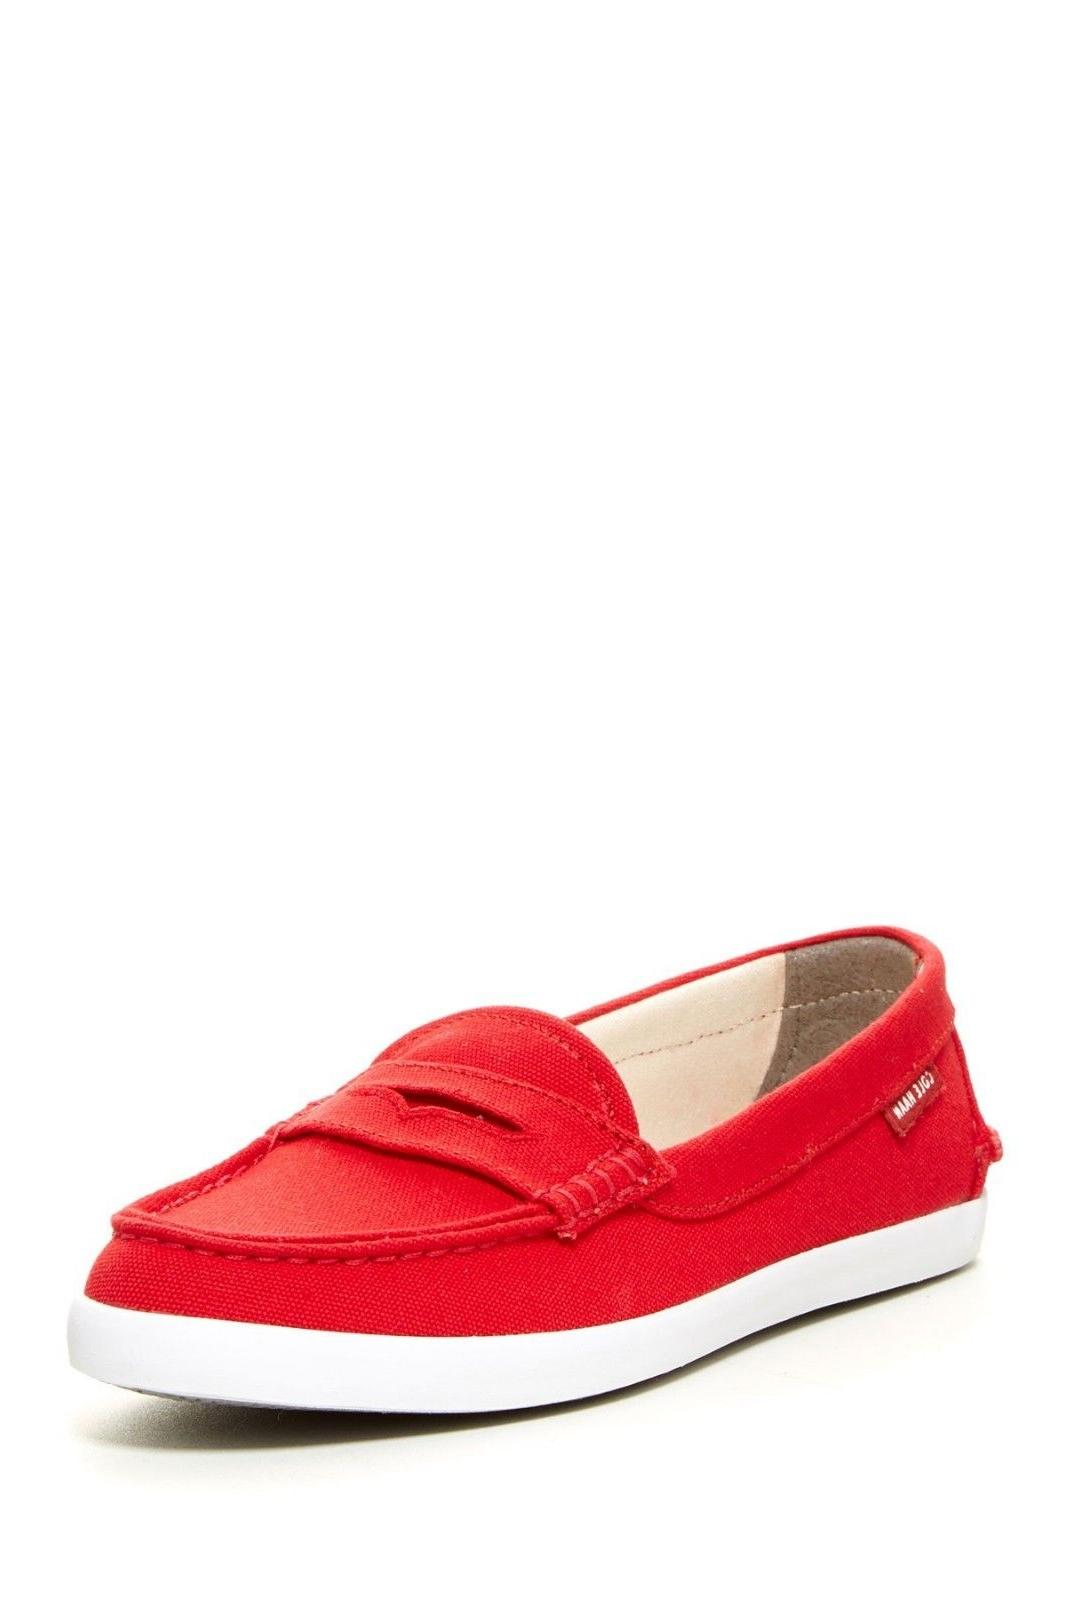 NIB Cole Haan Red Canvas Loafer Flat Shoes